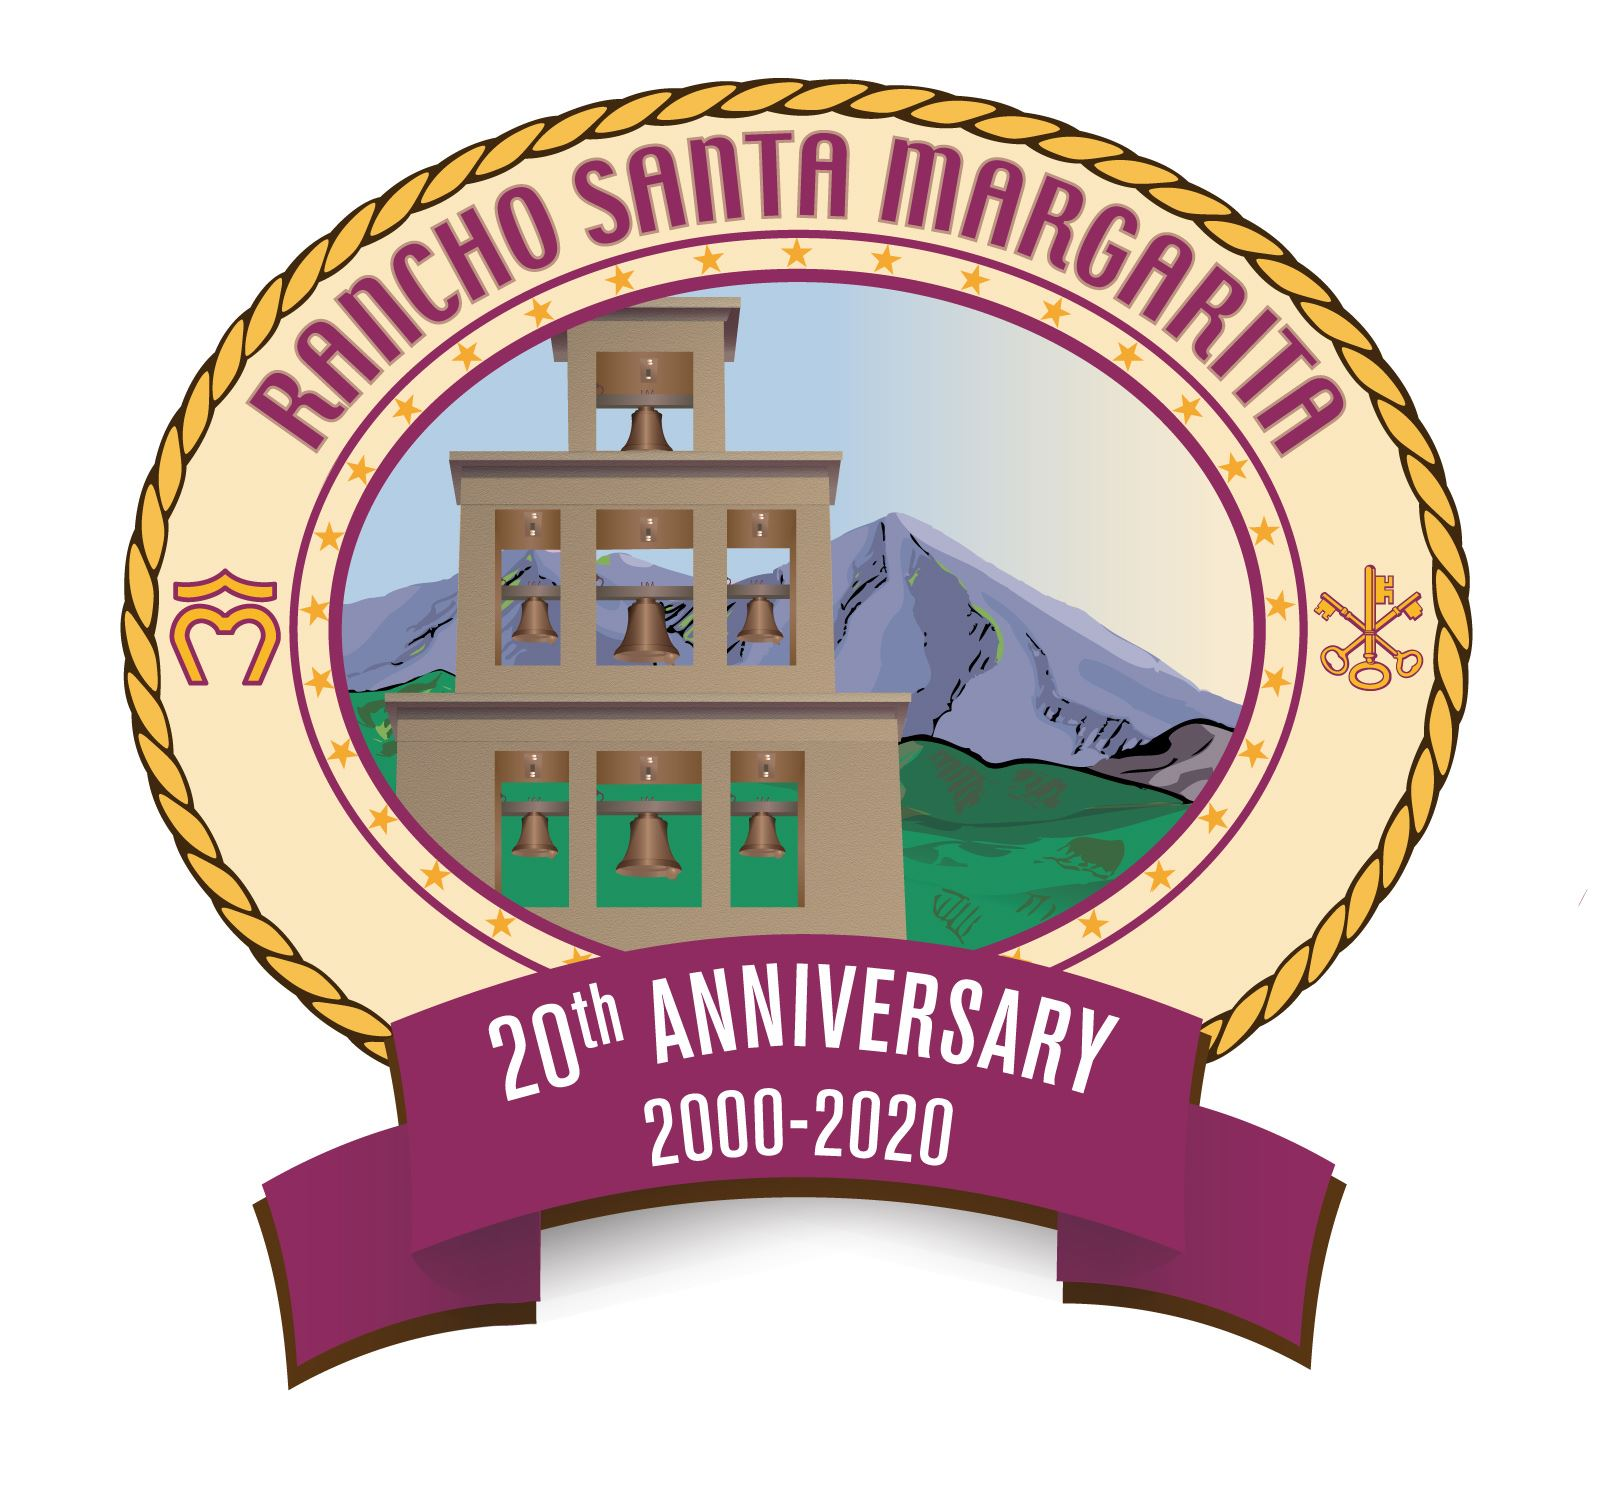 Rancho Santa Margarita 2020 Seal